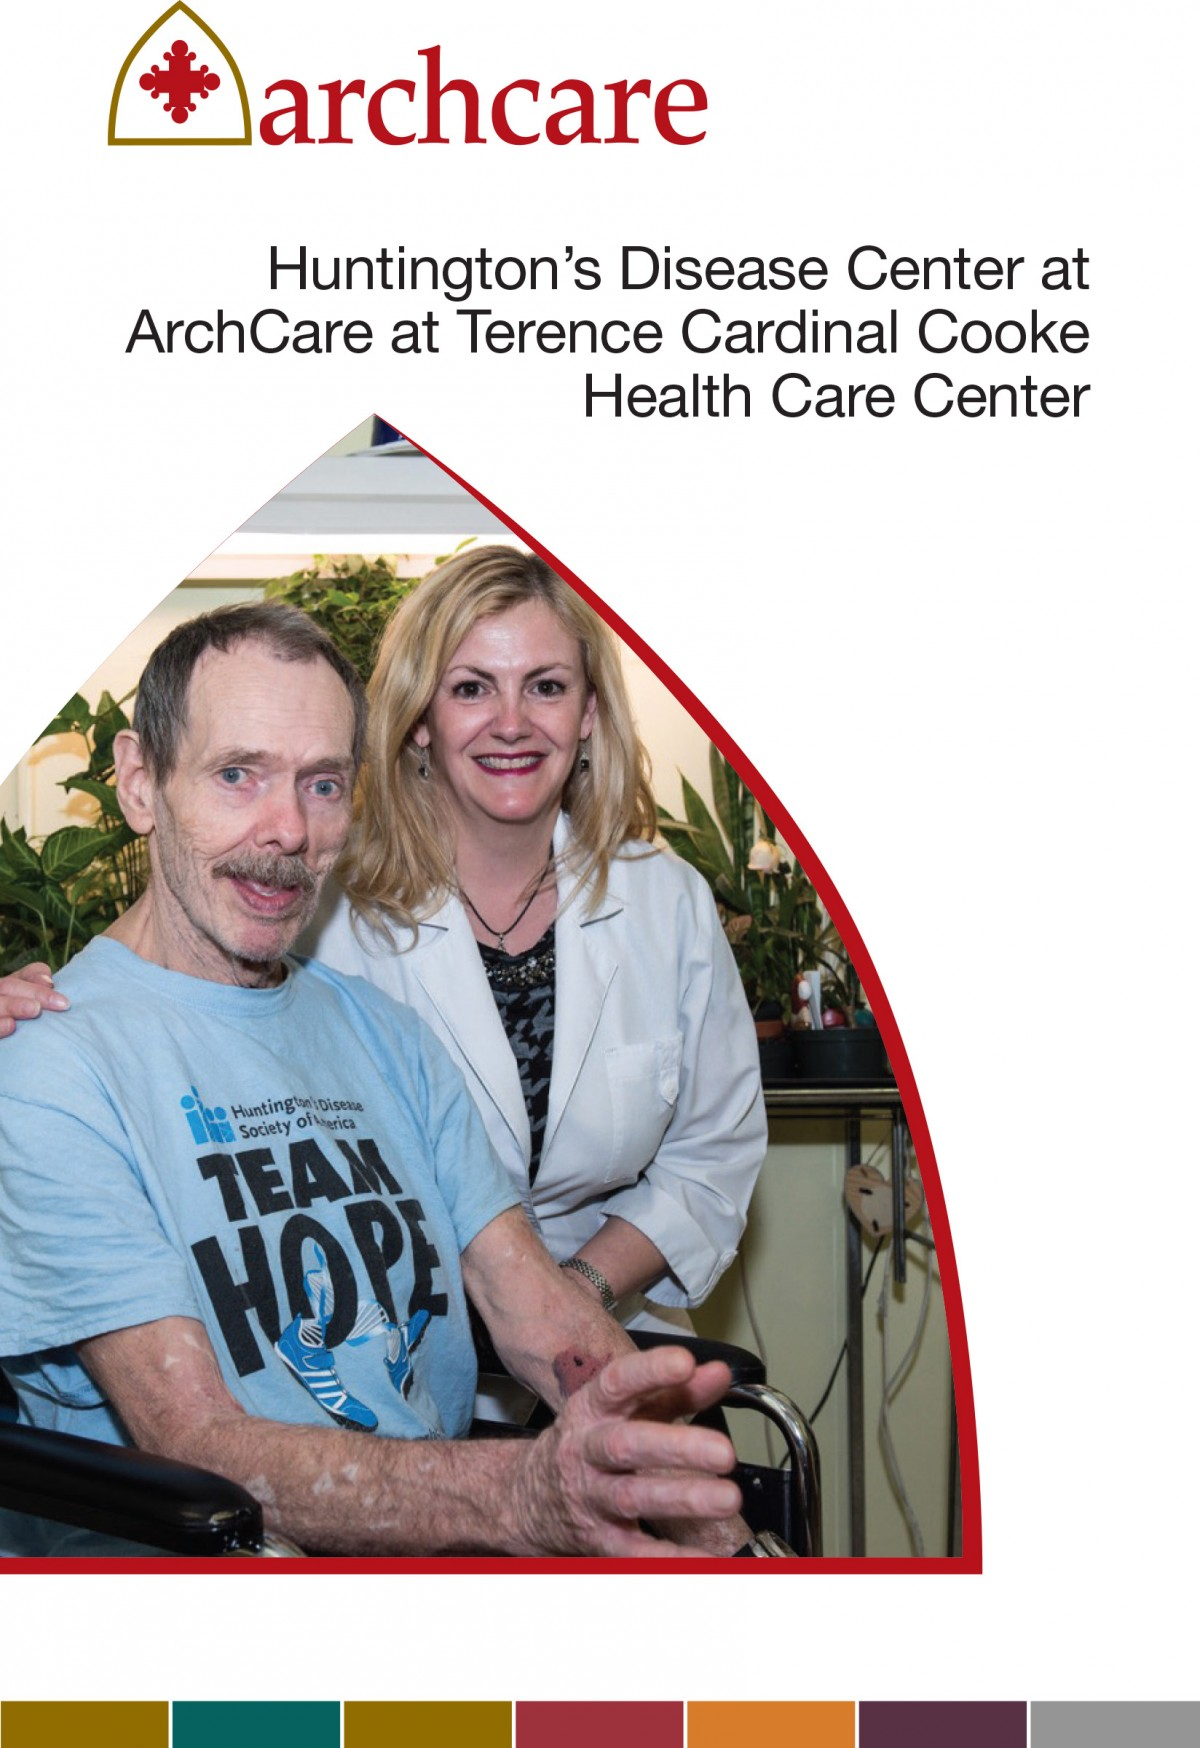 ArchCare at Terence Cardinal Cooke Health Care Center Huntington's disease care brochure